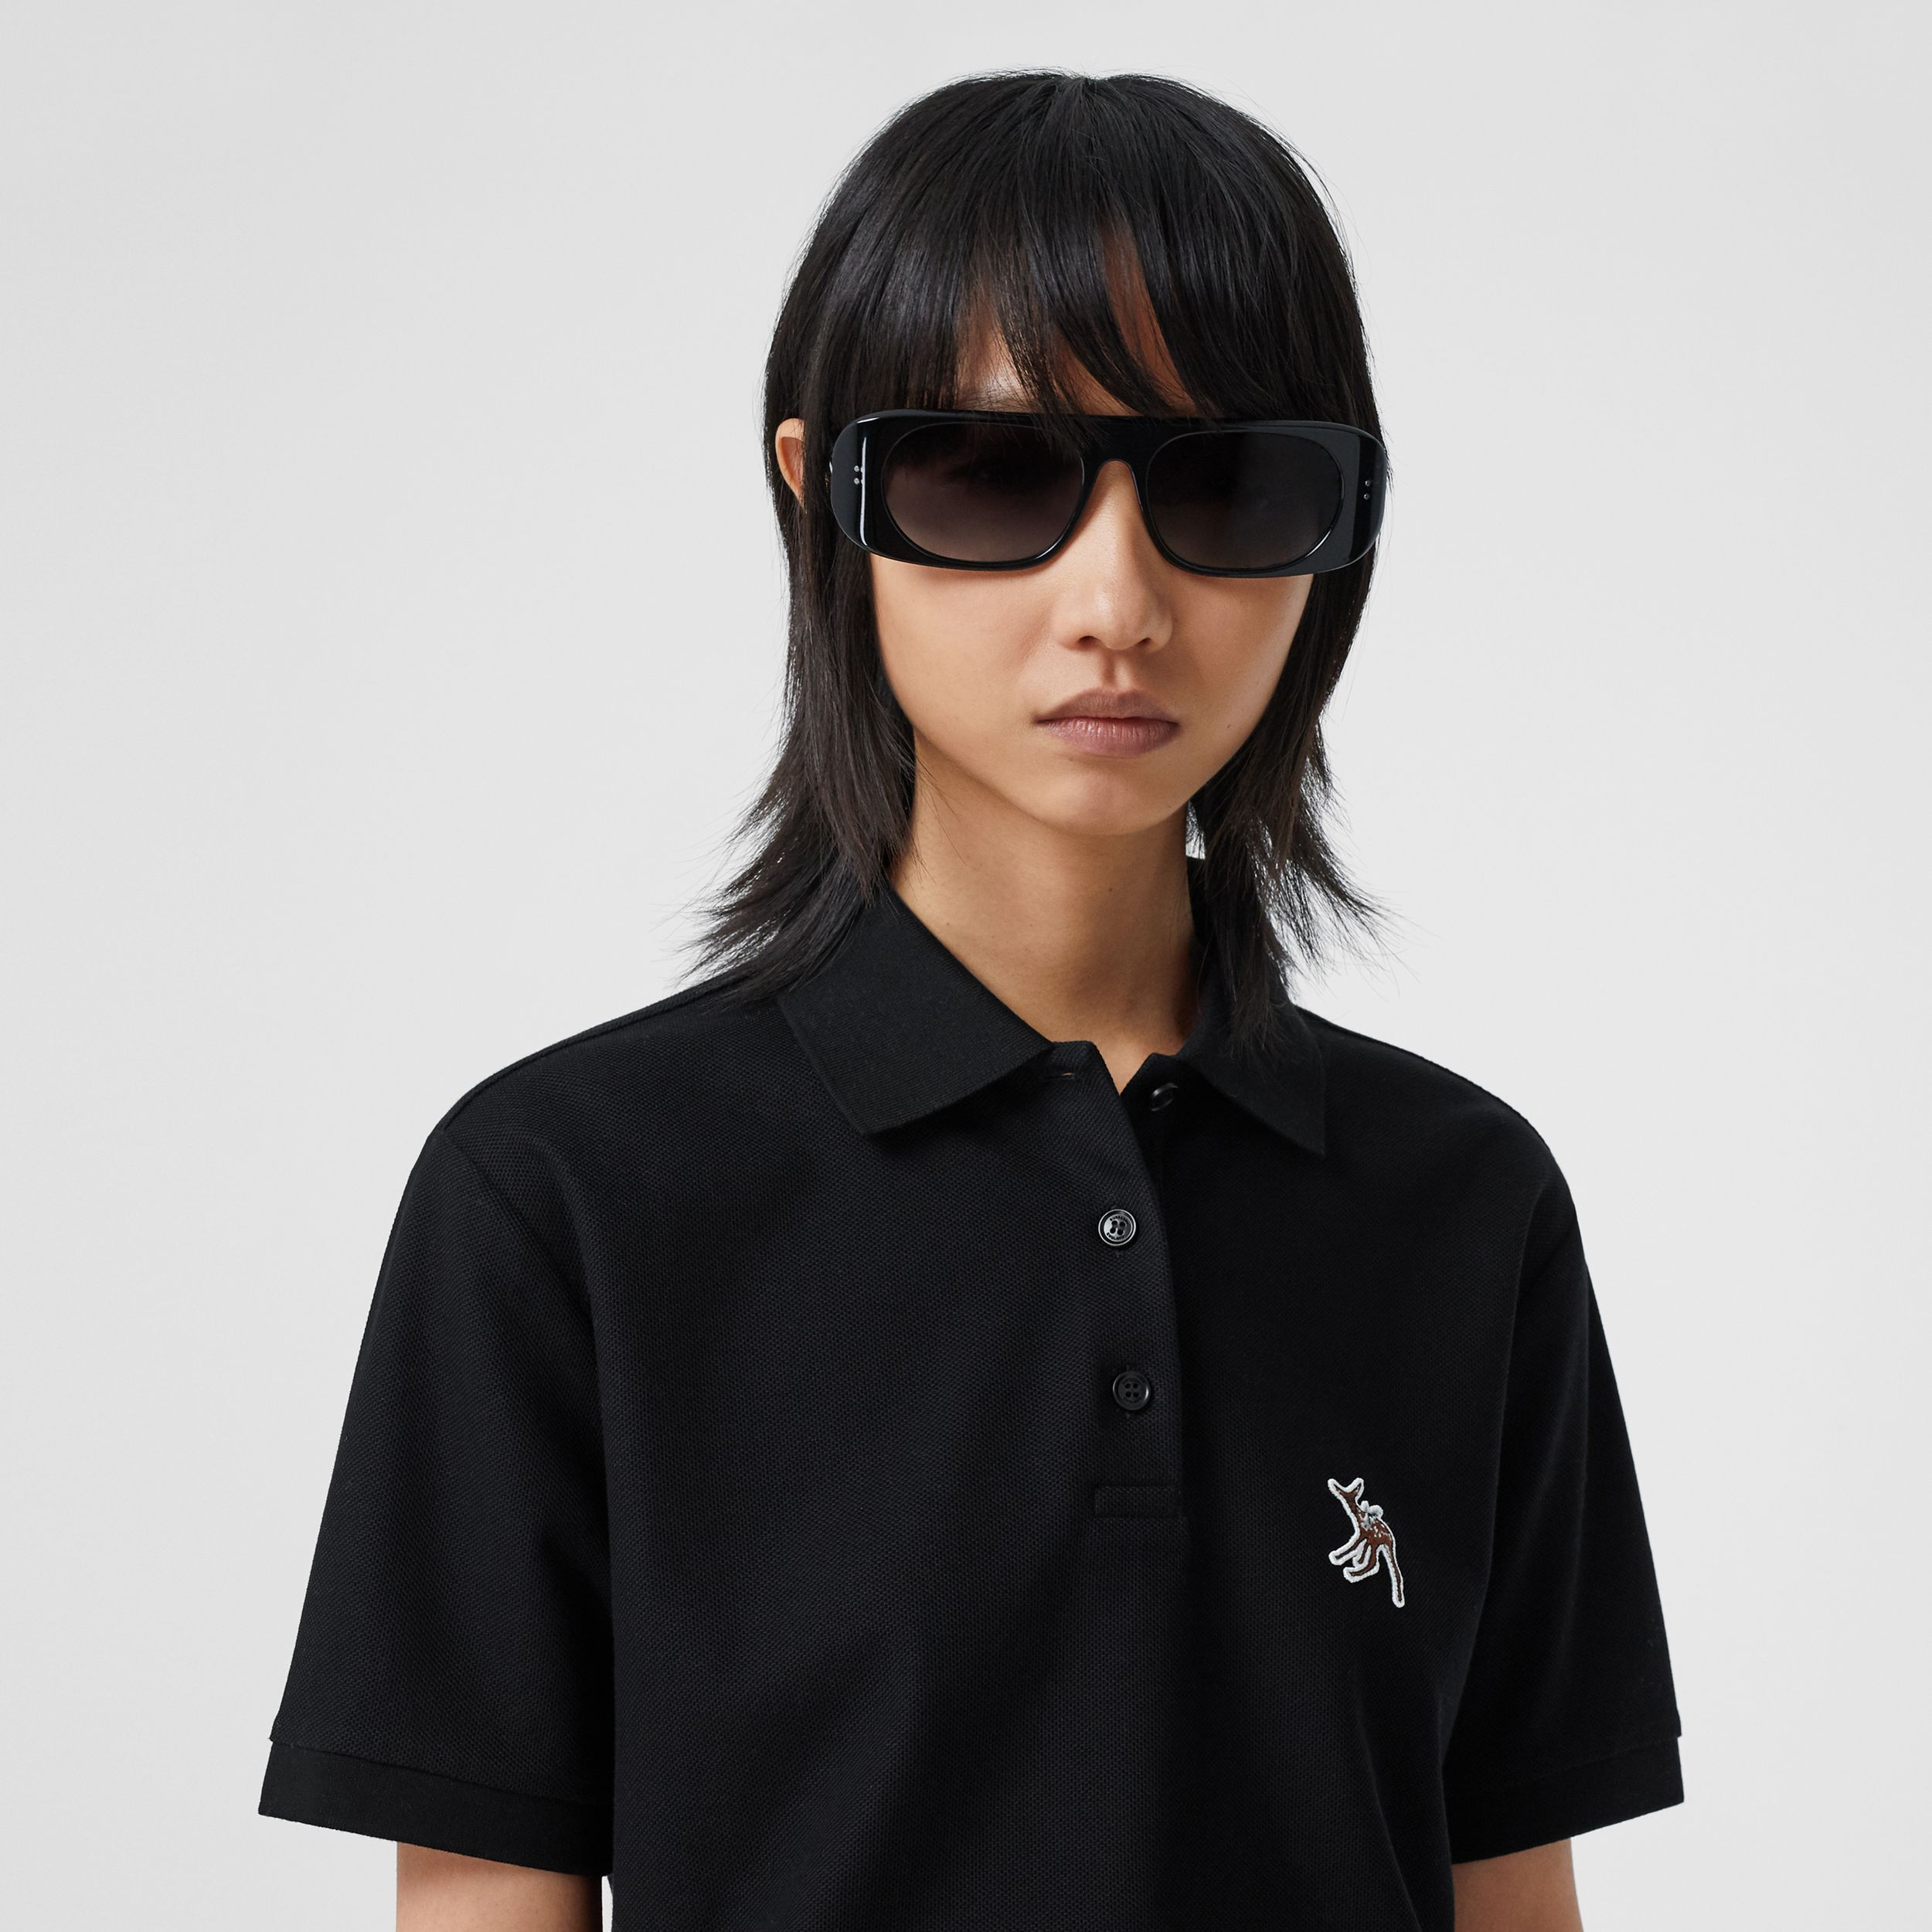 Deer Motif Cotton Piqué Oversized Polo Shirt in Black - Women | Burberry - 2